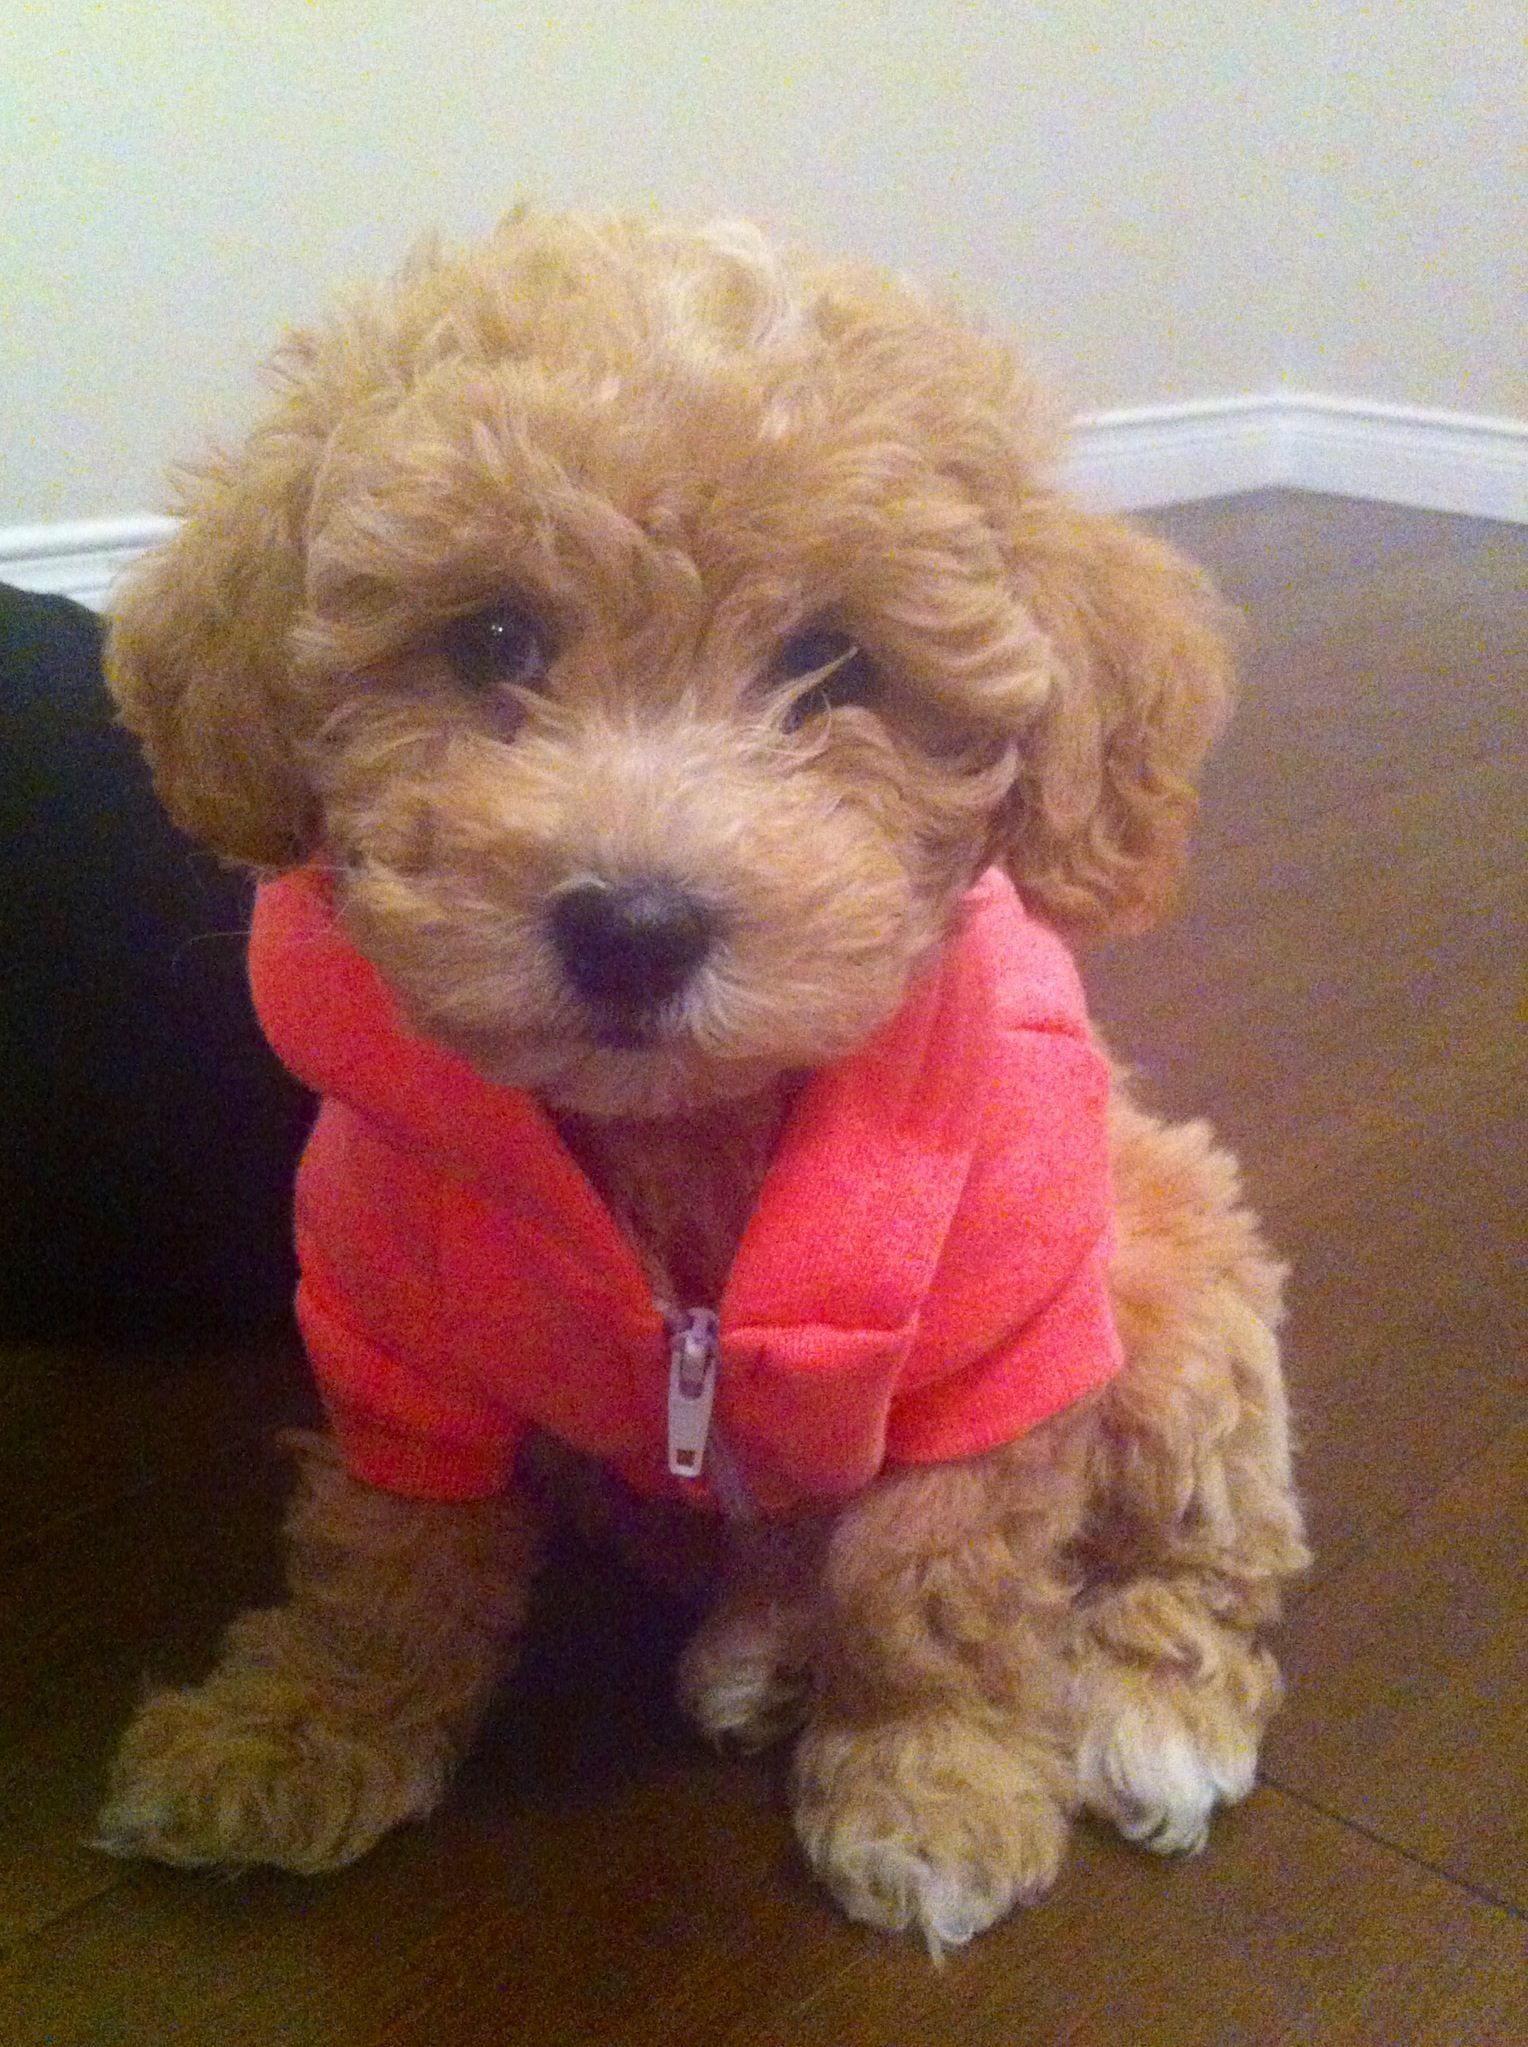 Bichon Poodle My Baby Sophie In Her American Apparel Sweater She S 8 Weeks Today Puppy Swag I Just Love Her Baby Puppies Sweater Puppy Bichon Poodle Mix